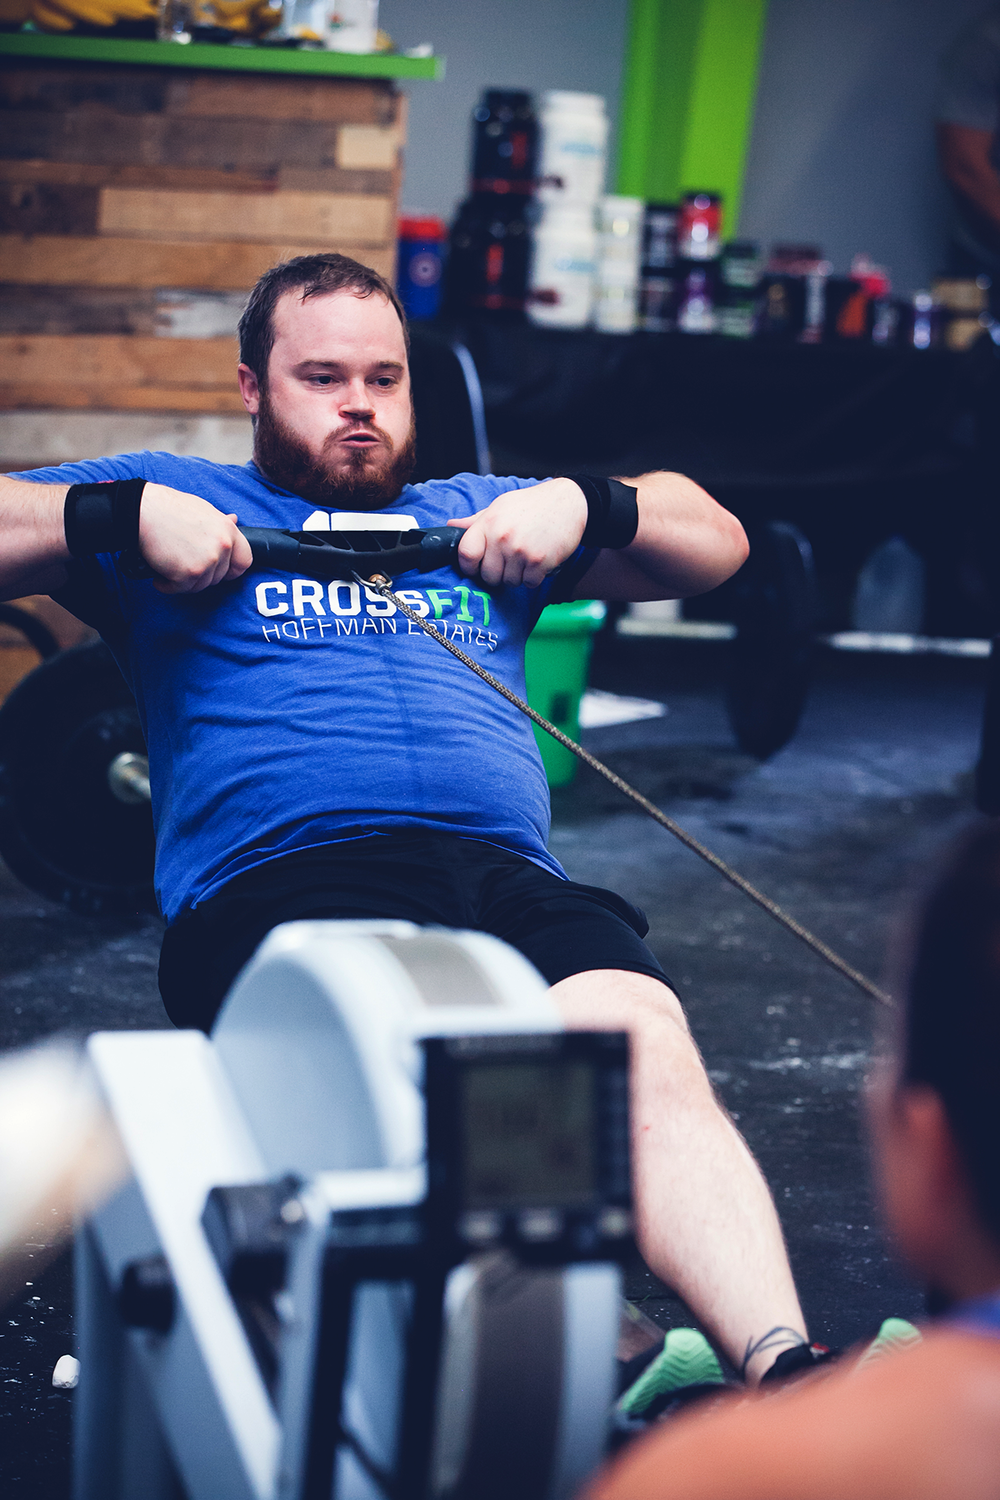 crossfit-hoffman-estates-2016-208_RT.png